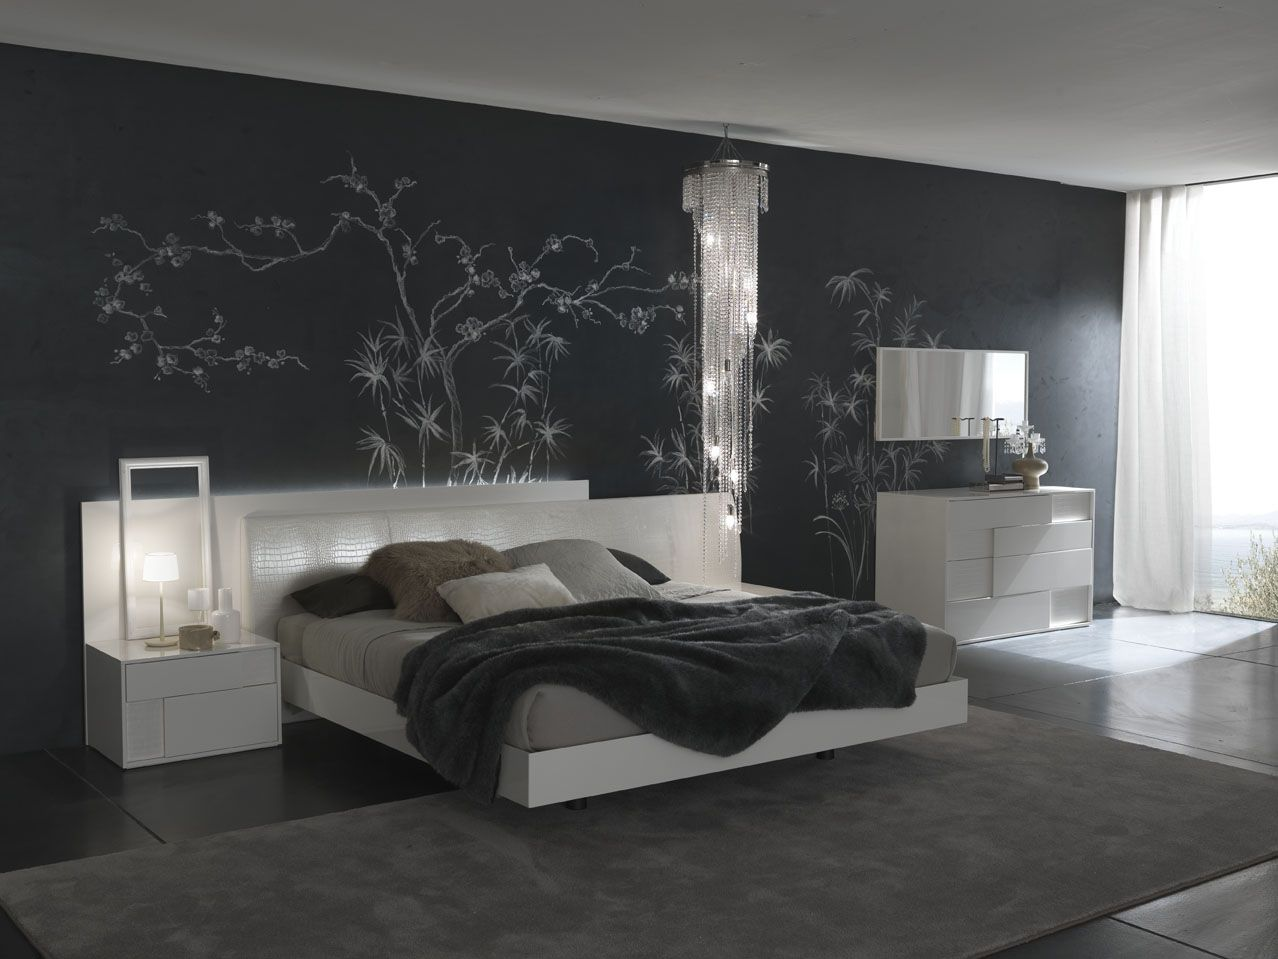 1000 images about eagle creek on pinterest modern design pictures modern bedrooms and modern living rooms bedroomamazing black white themed bedroom